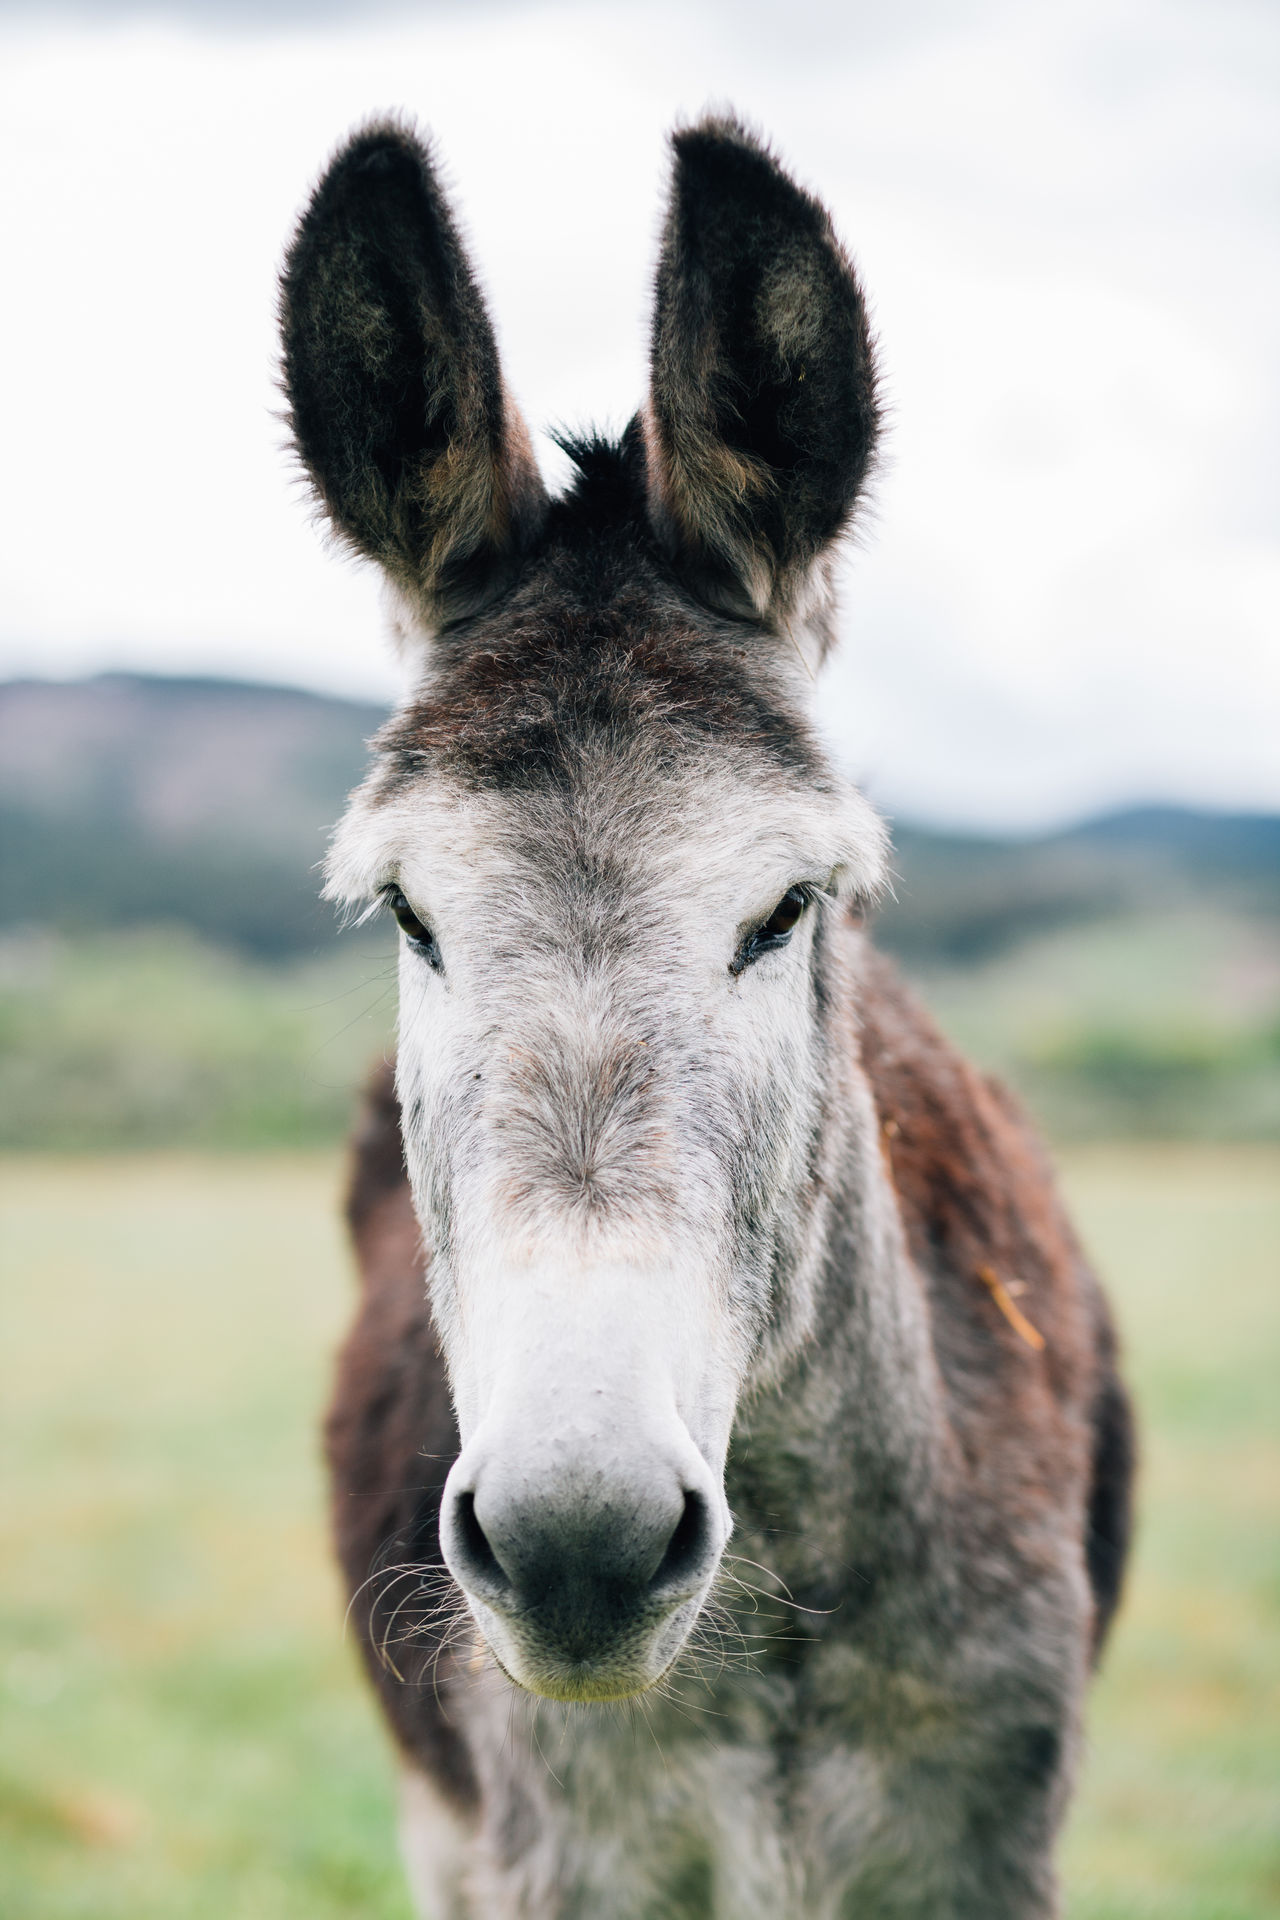 Animal Animal Head  Animal Themes Close-up Day Domestic Animals Donkey Focus On Foreground Front View Livestock Looking At Camera Mammal No People One Animal Outdoors Portrait Snout Standing